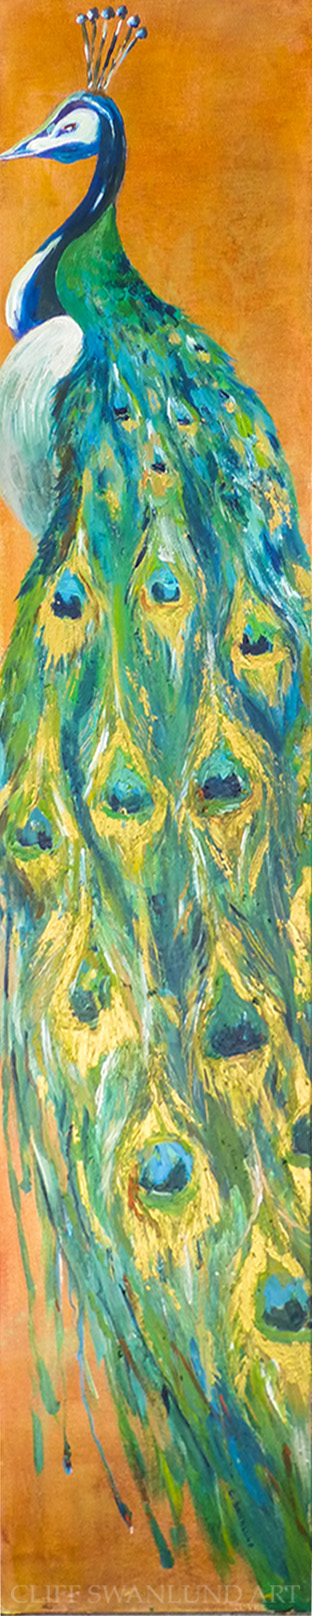 "Peacock - 12"" X 48"" - SOLD"